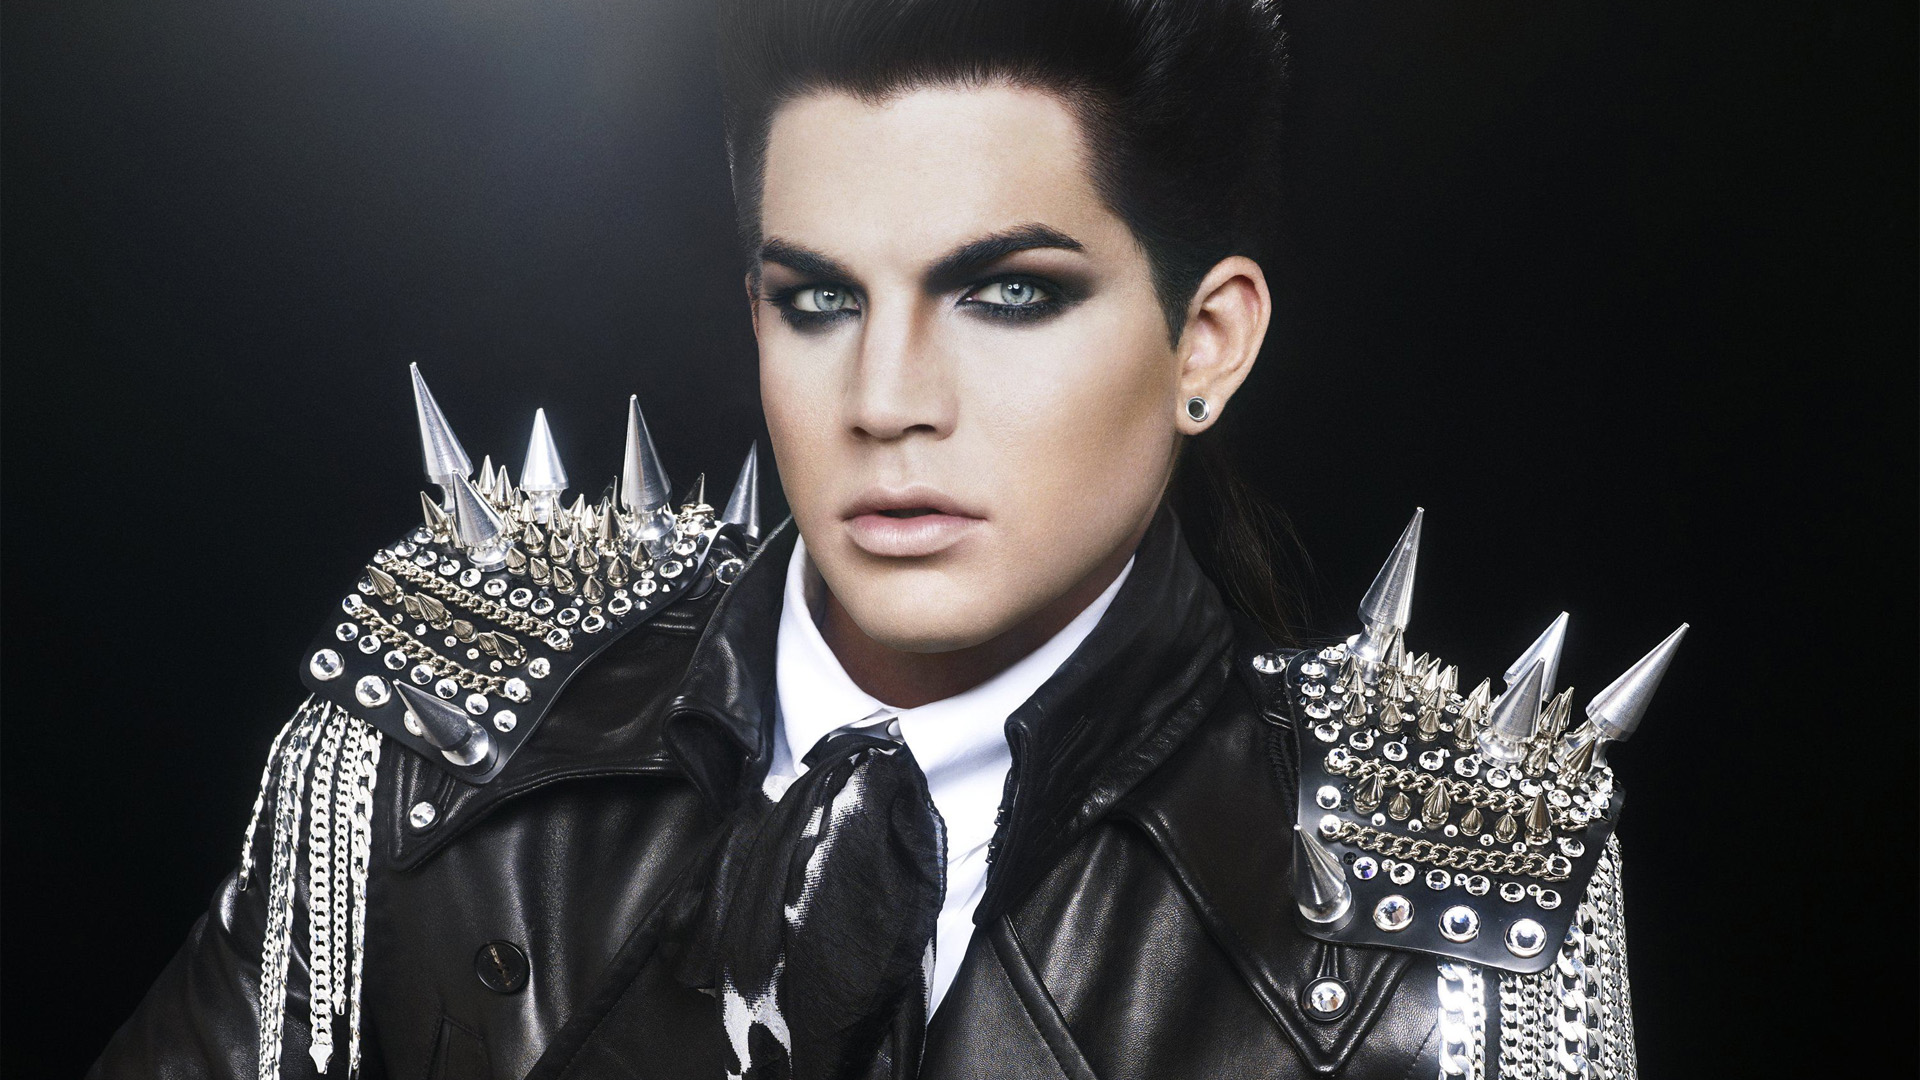 lambert wallpaper adam - photo #22